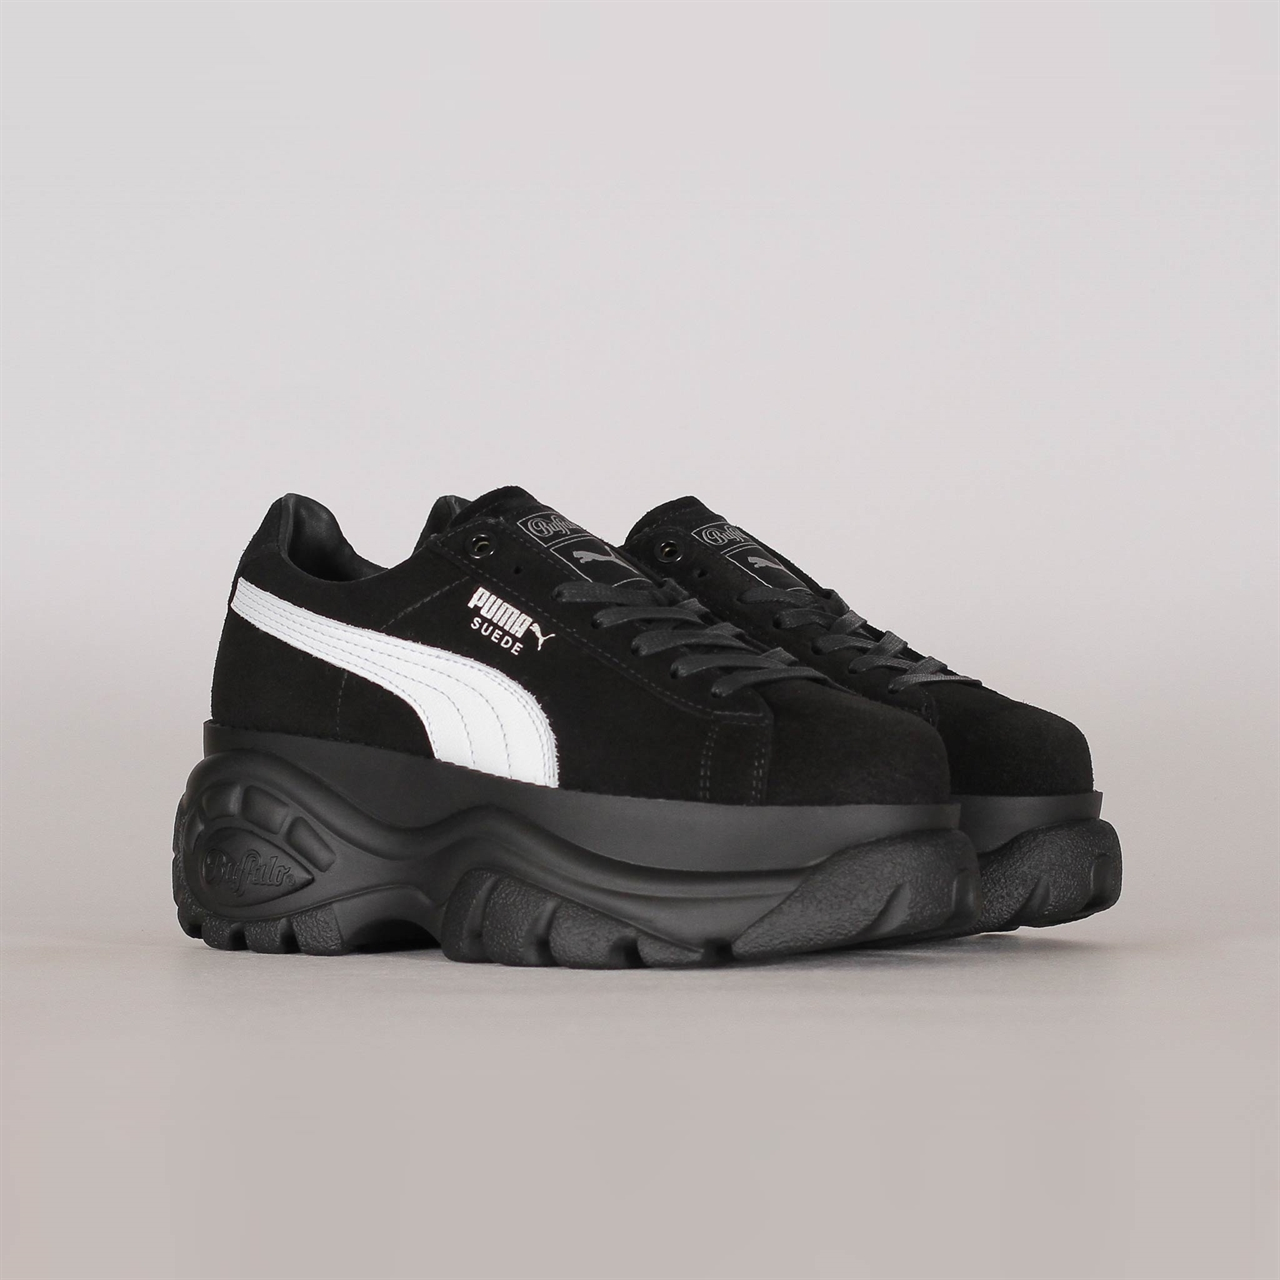 a531ea62cb30 x Buffalo Suede Classic Black (368499-002). 159 159EUR   a pair. Colorway   Puma ...